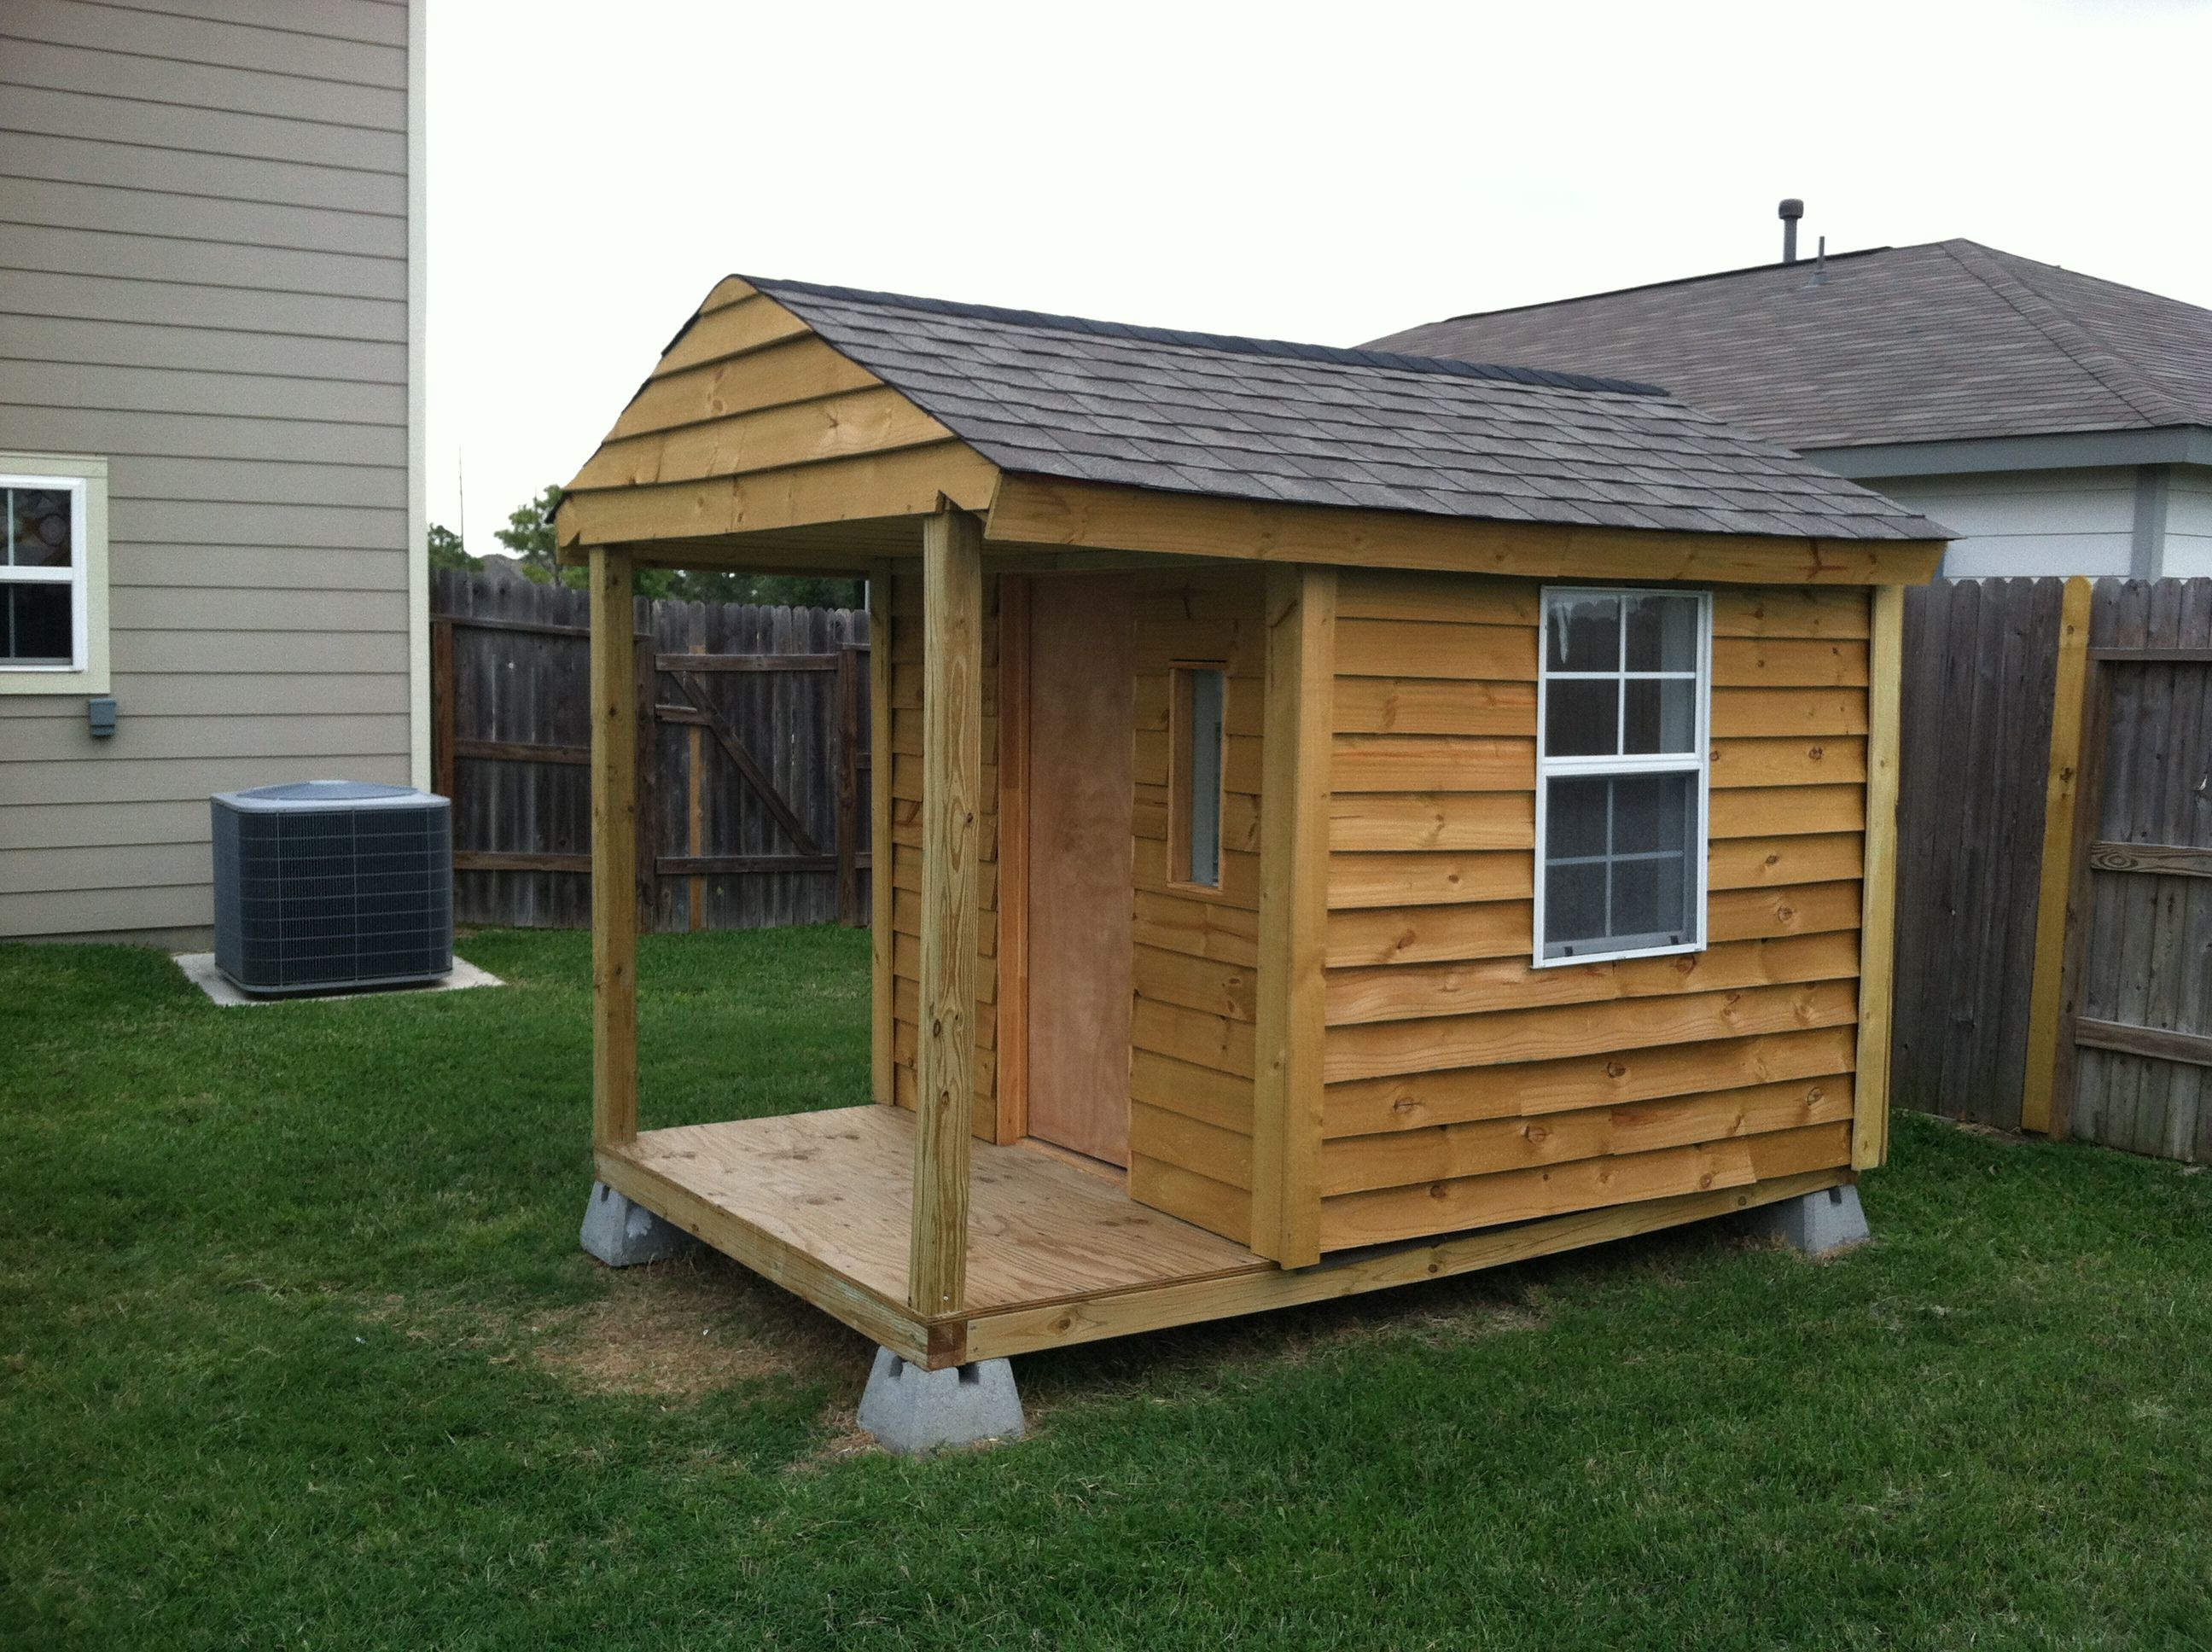 Garden Sheds Houston custom playhouse and doghouse- houston, tx | mirabella playhouses